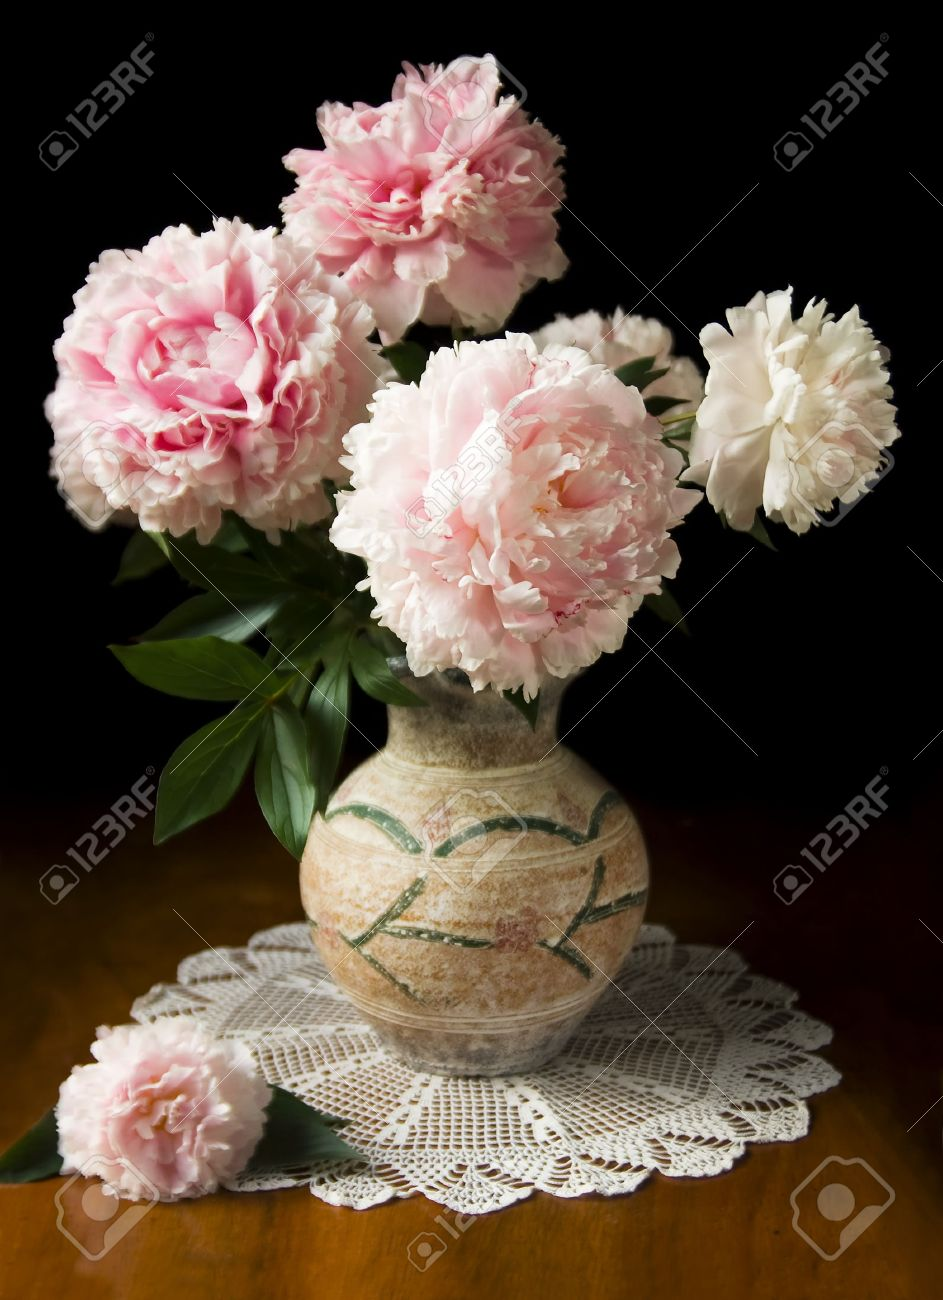 Peony vase excellent best ideas about peony arrangement on finest stilllife with pink peony in vase stock photo with peony vase reviewsmspy